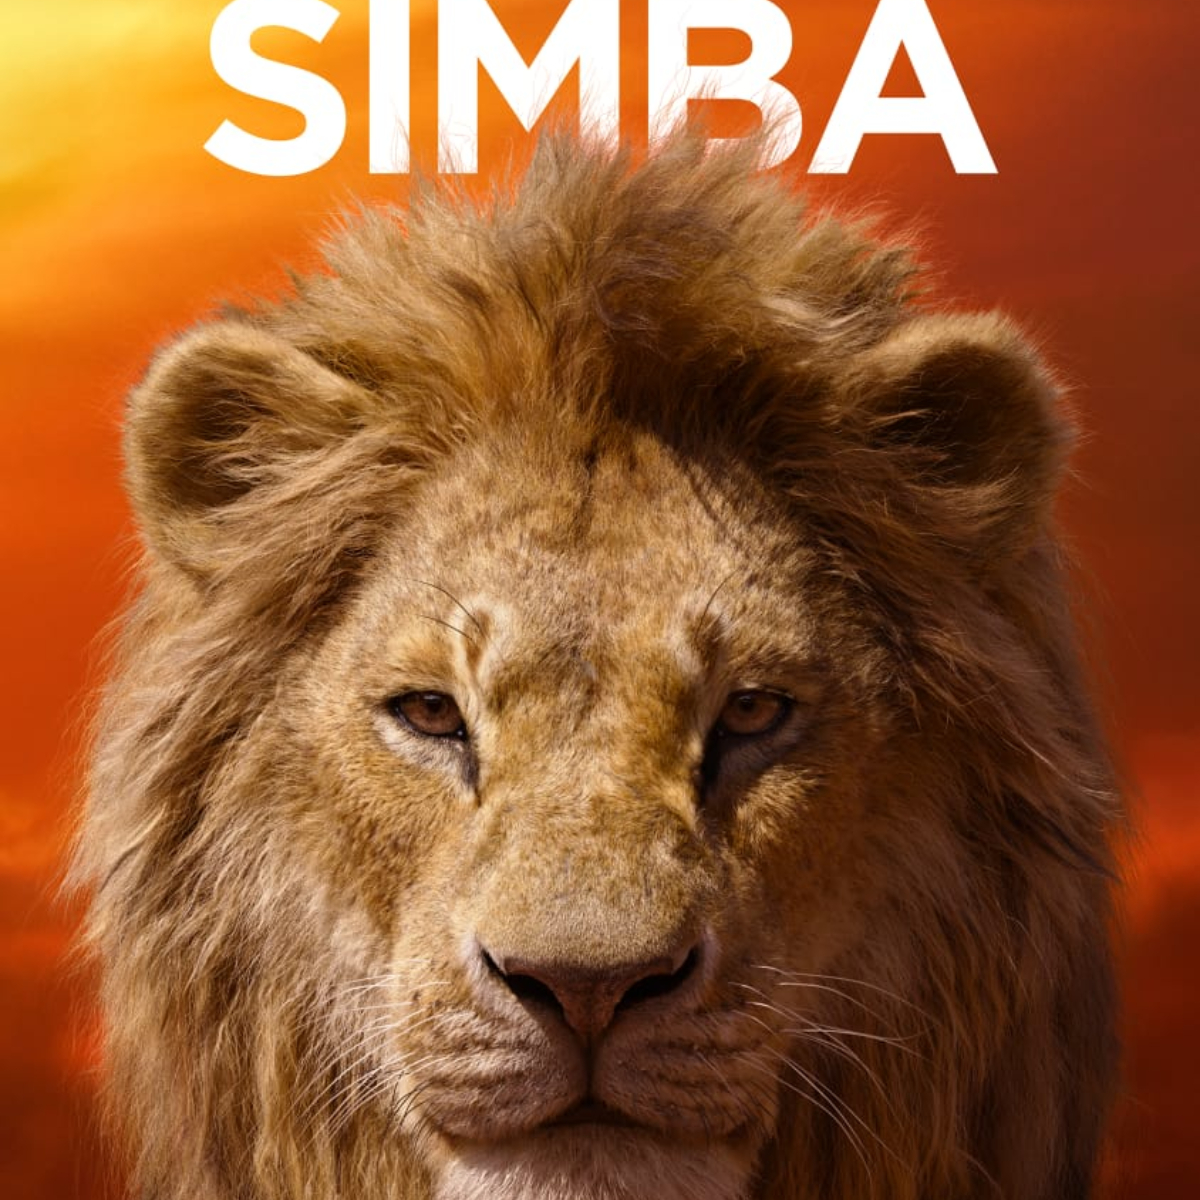 The Lion King full movie LEAKED online by Tamilrockers